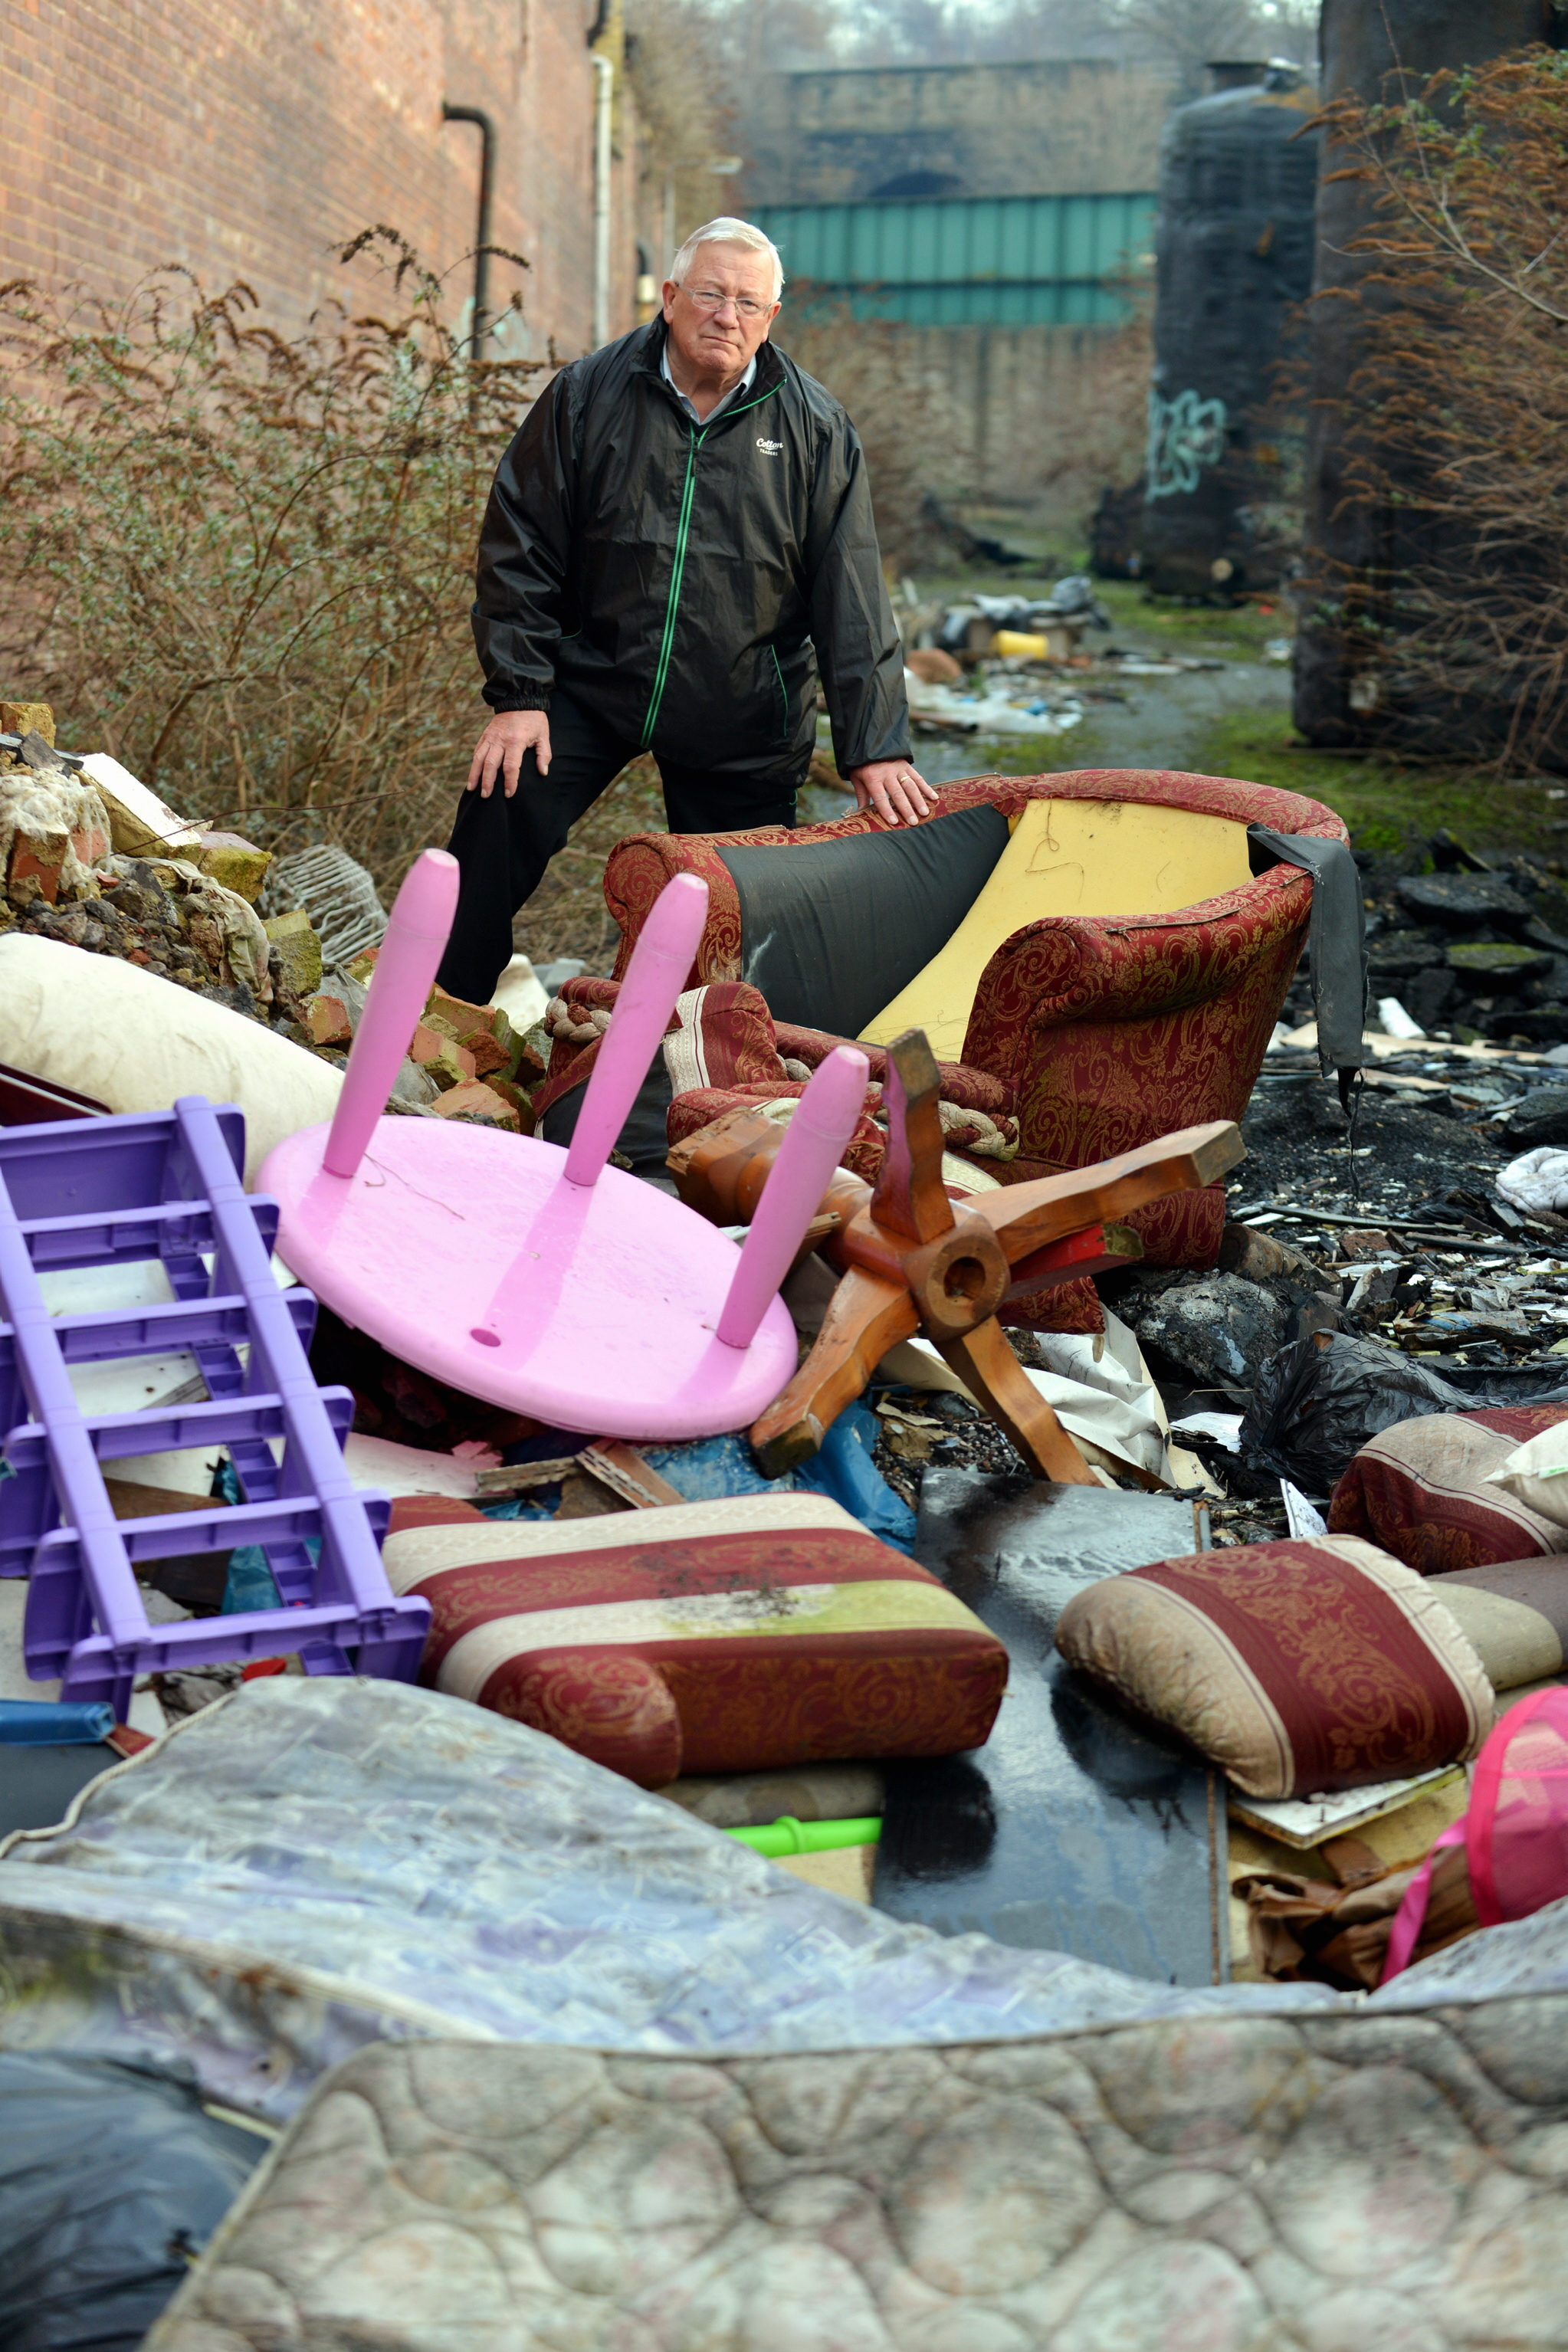 bradford council sofa removal extra long slipcovers to use new powers hit fly tippers with fixed councillor mike ellis pictured at a tipping site in 2014